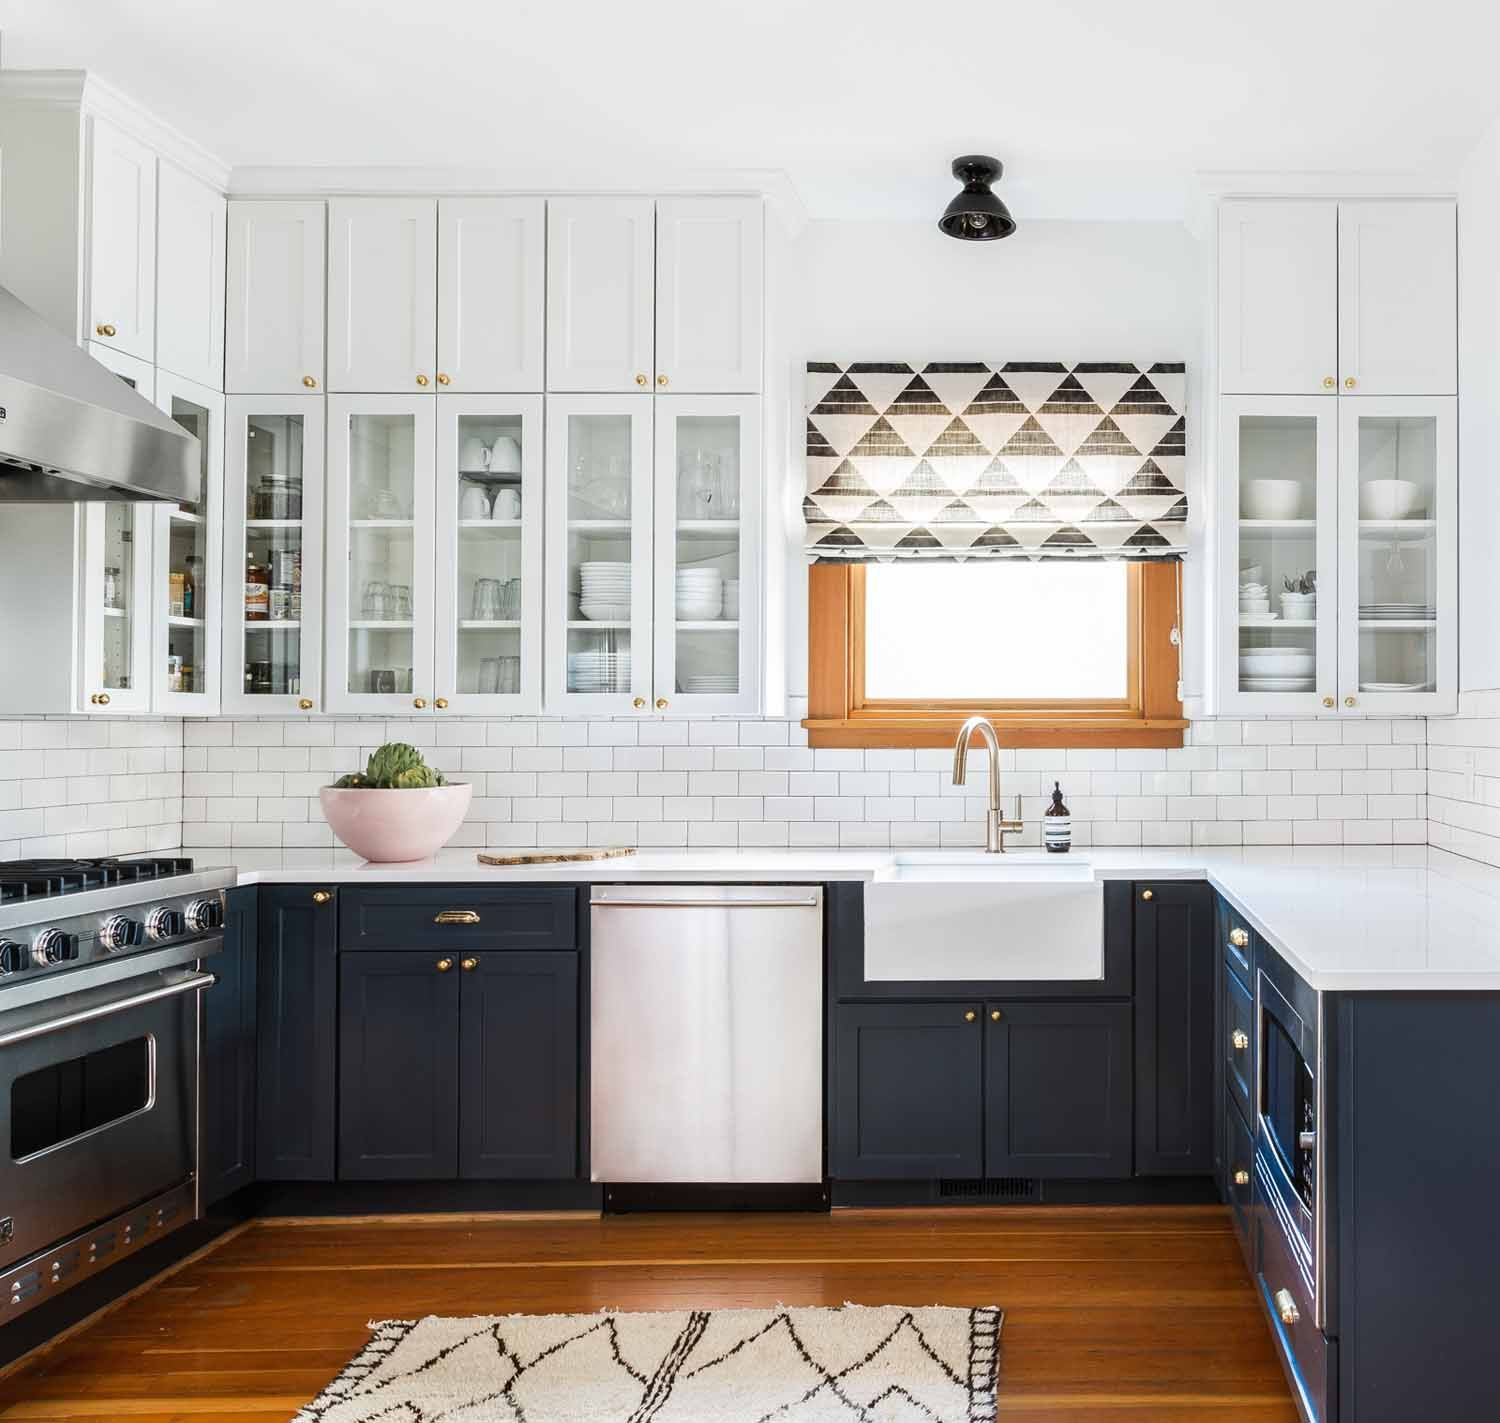 6 Stunning Seattle Area Homes To Envy Navy Kitchen Cabinets Kitchen Cabinet Design Kitchen Cabinet Colors